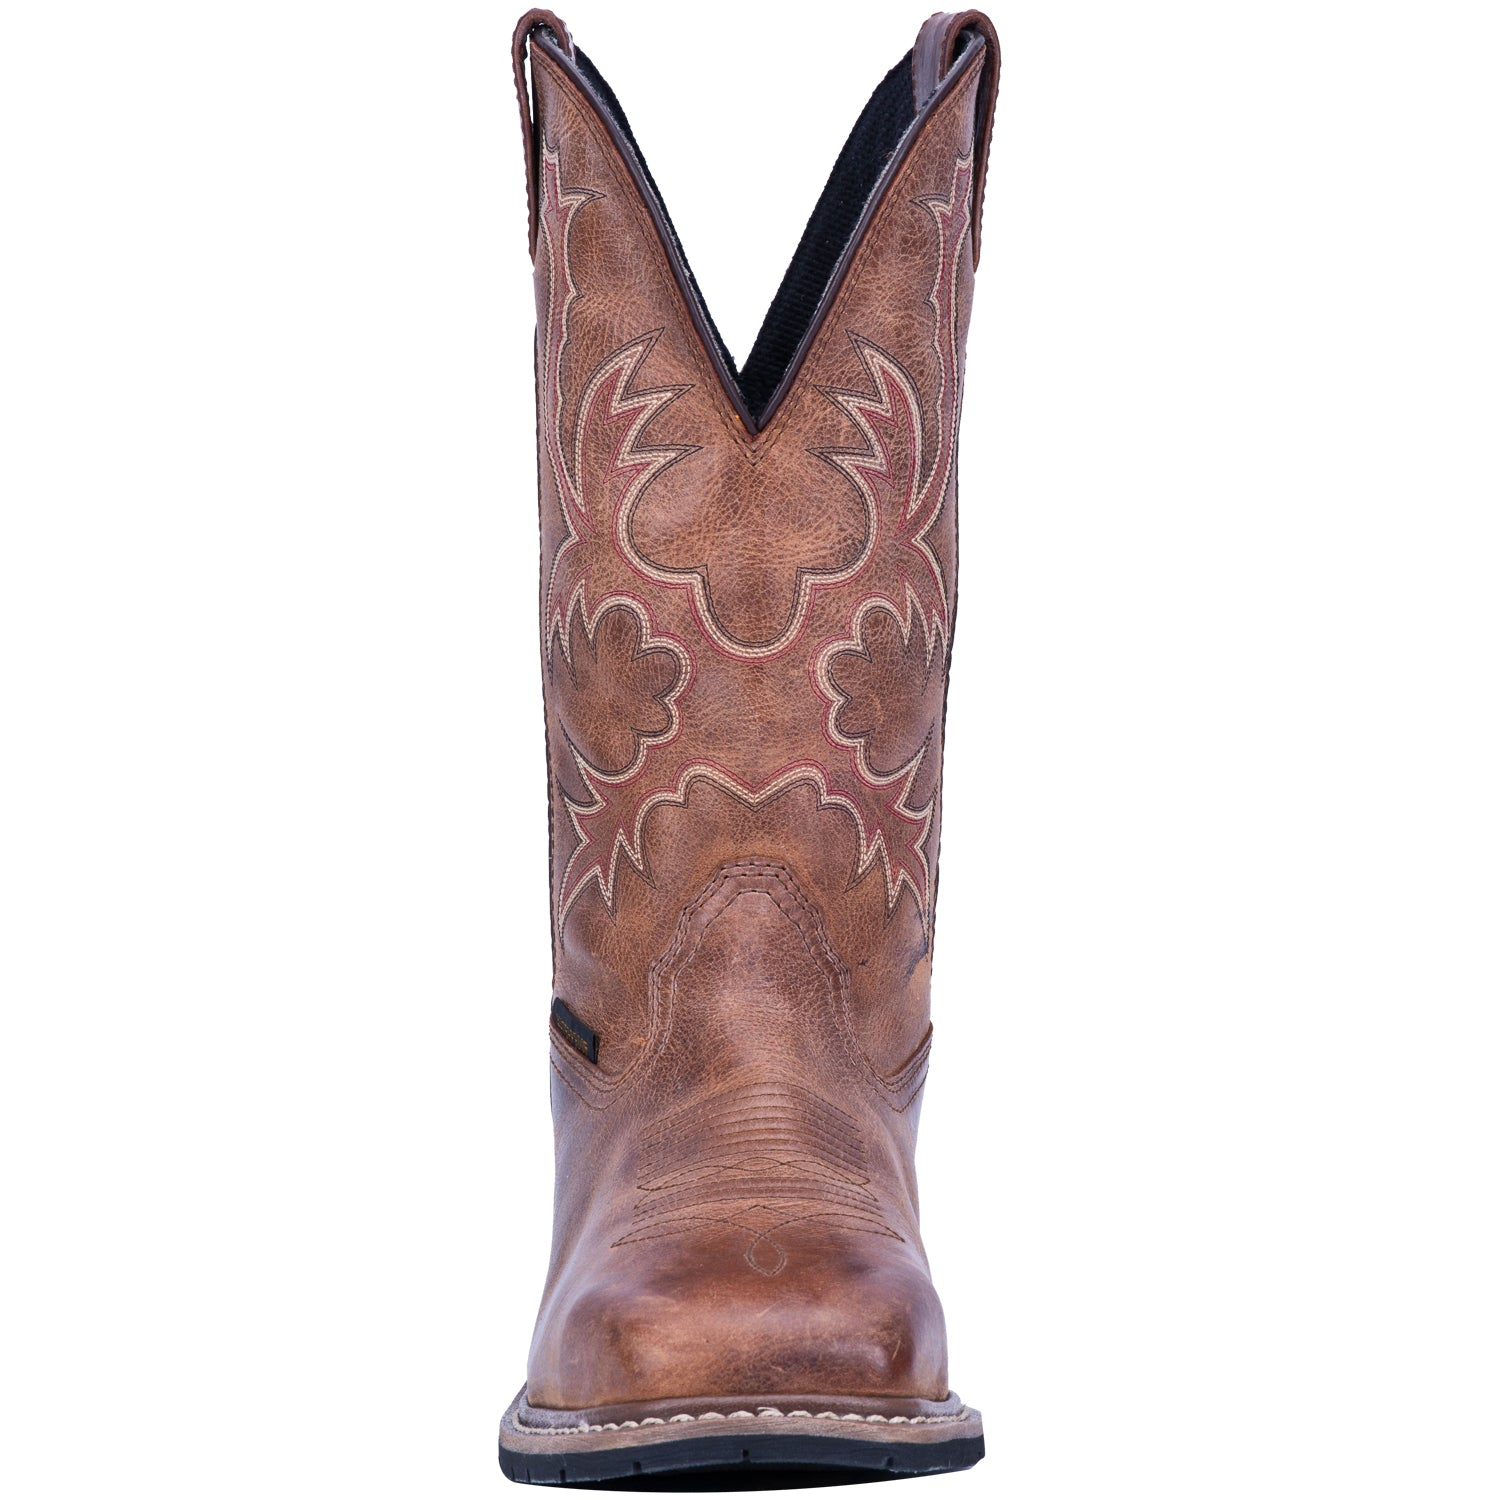 NOGALES WATERPROOF LEATHER BOOT 4253979312170